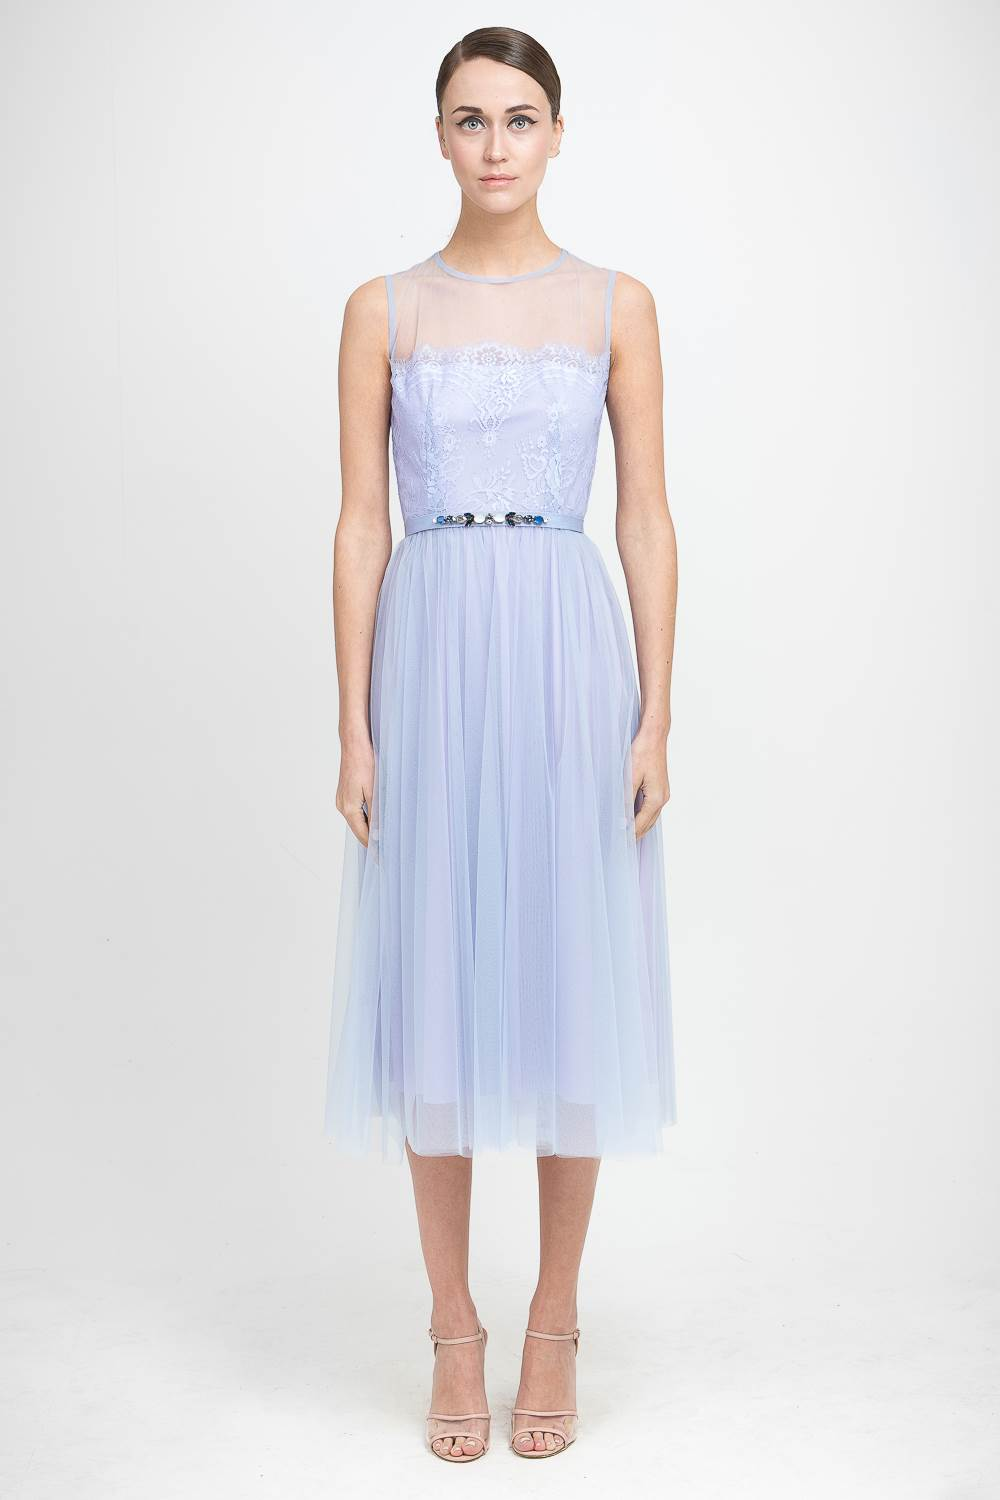 Pastel wedding dresses for the bride or even the bridesmaid